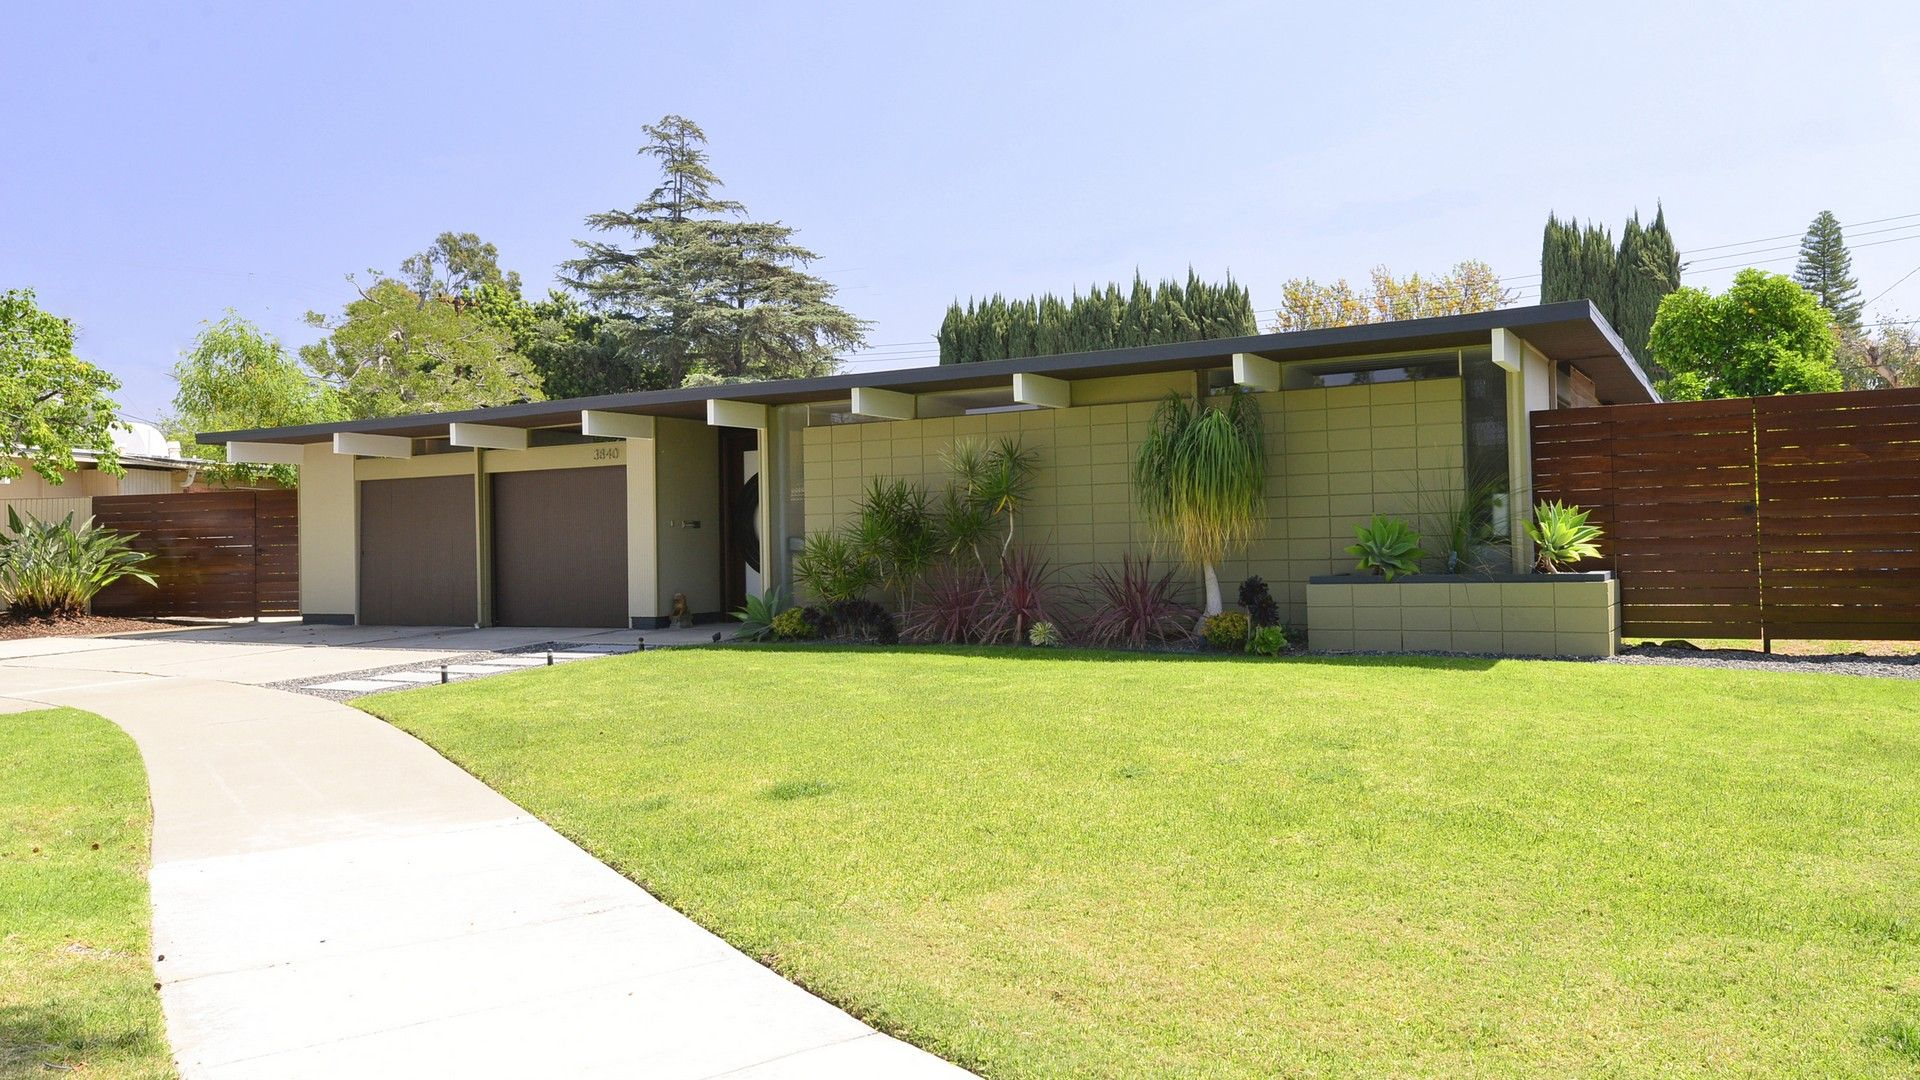 Eichler homes in southern california socal eichlers for